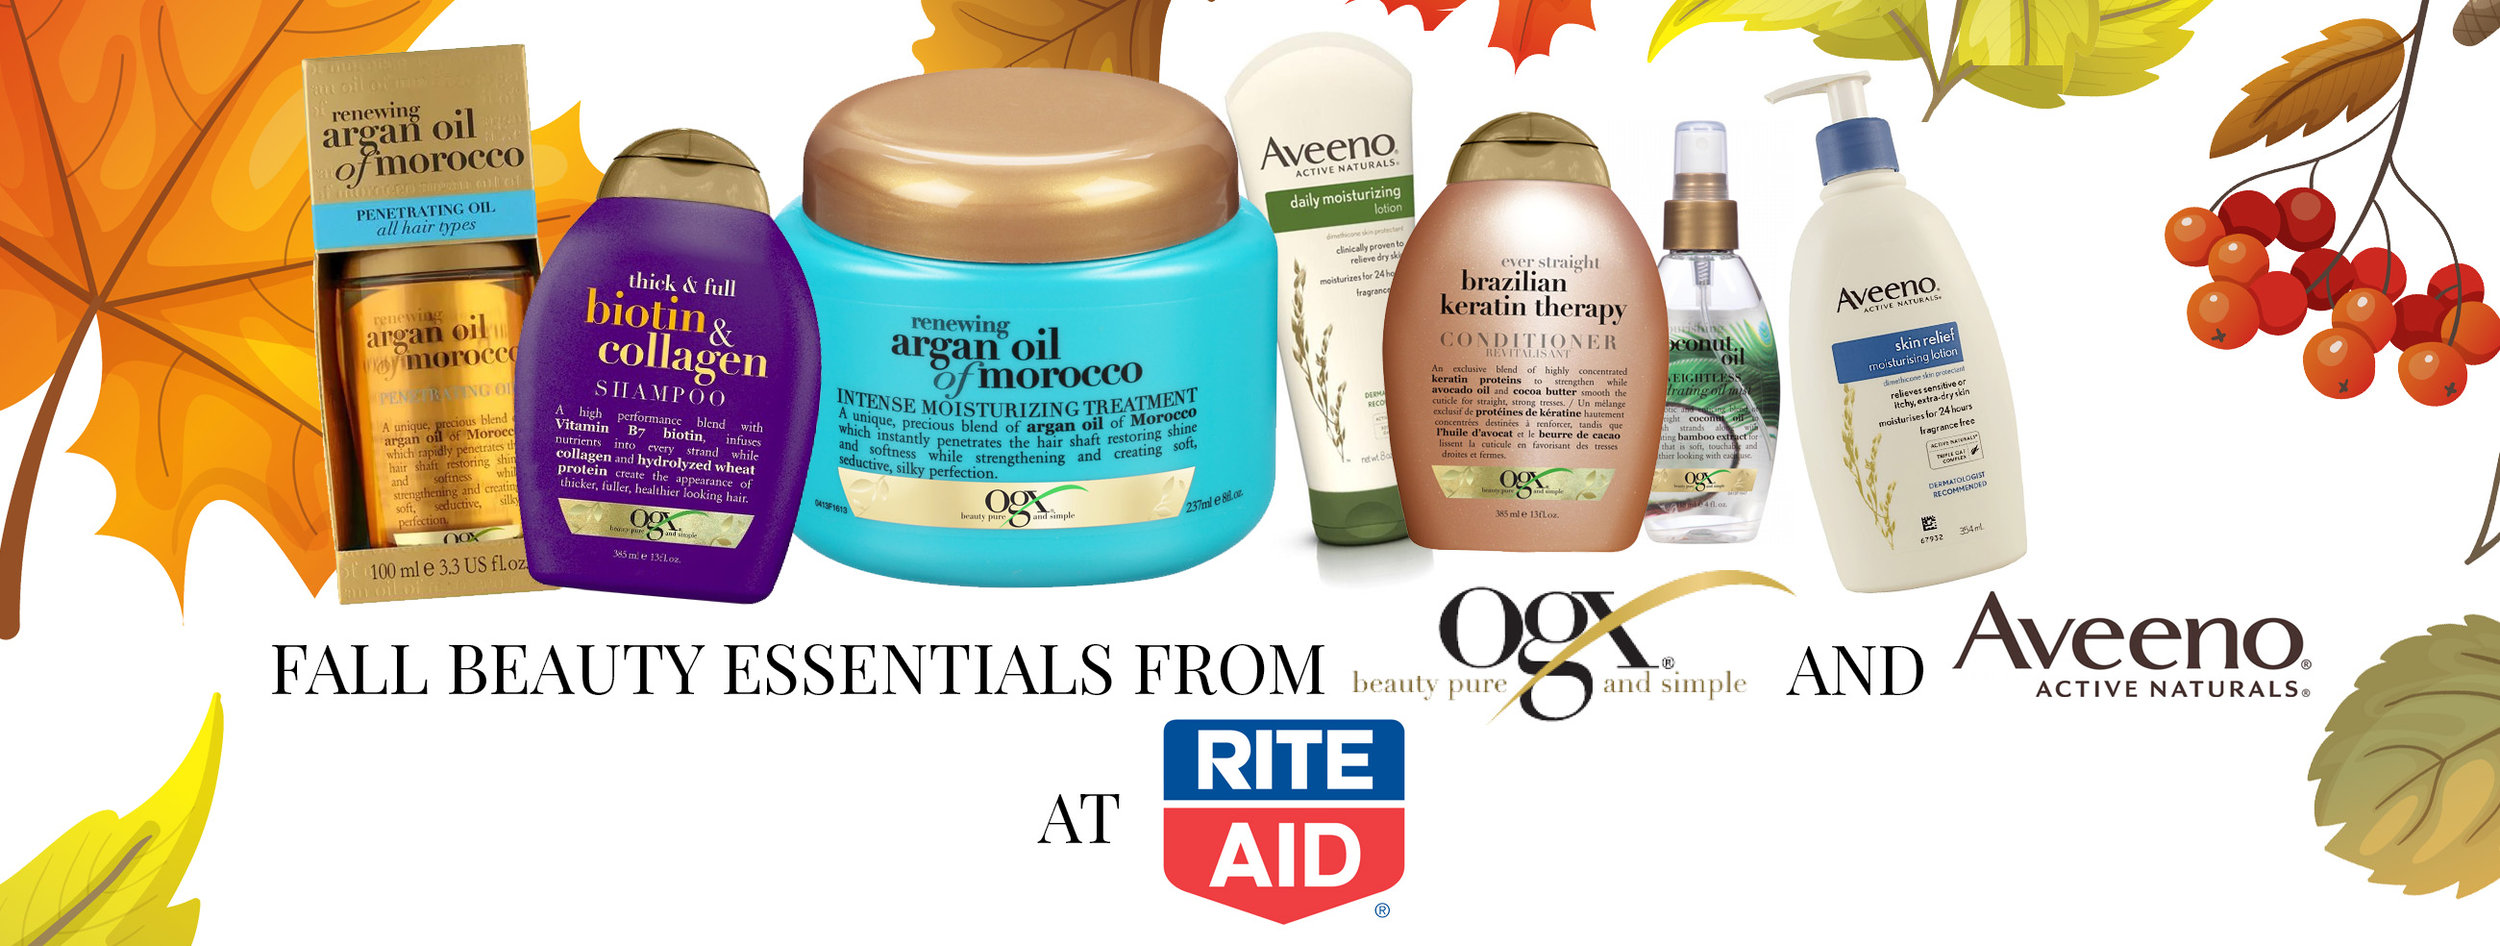 Rite Aid and Shopstyle blogger campaign. Johnson & Johnson.